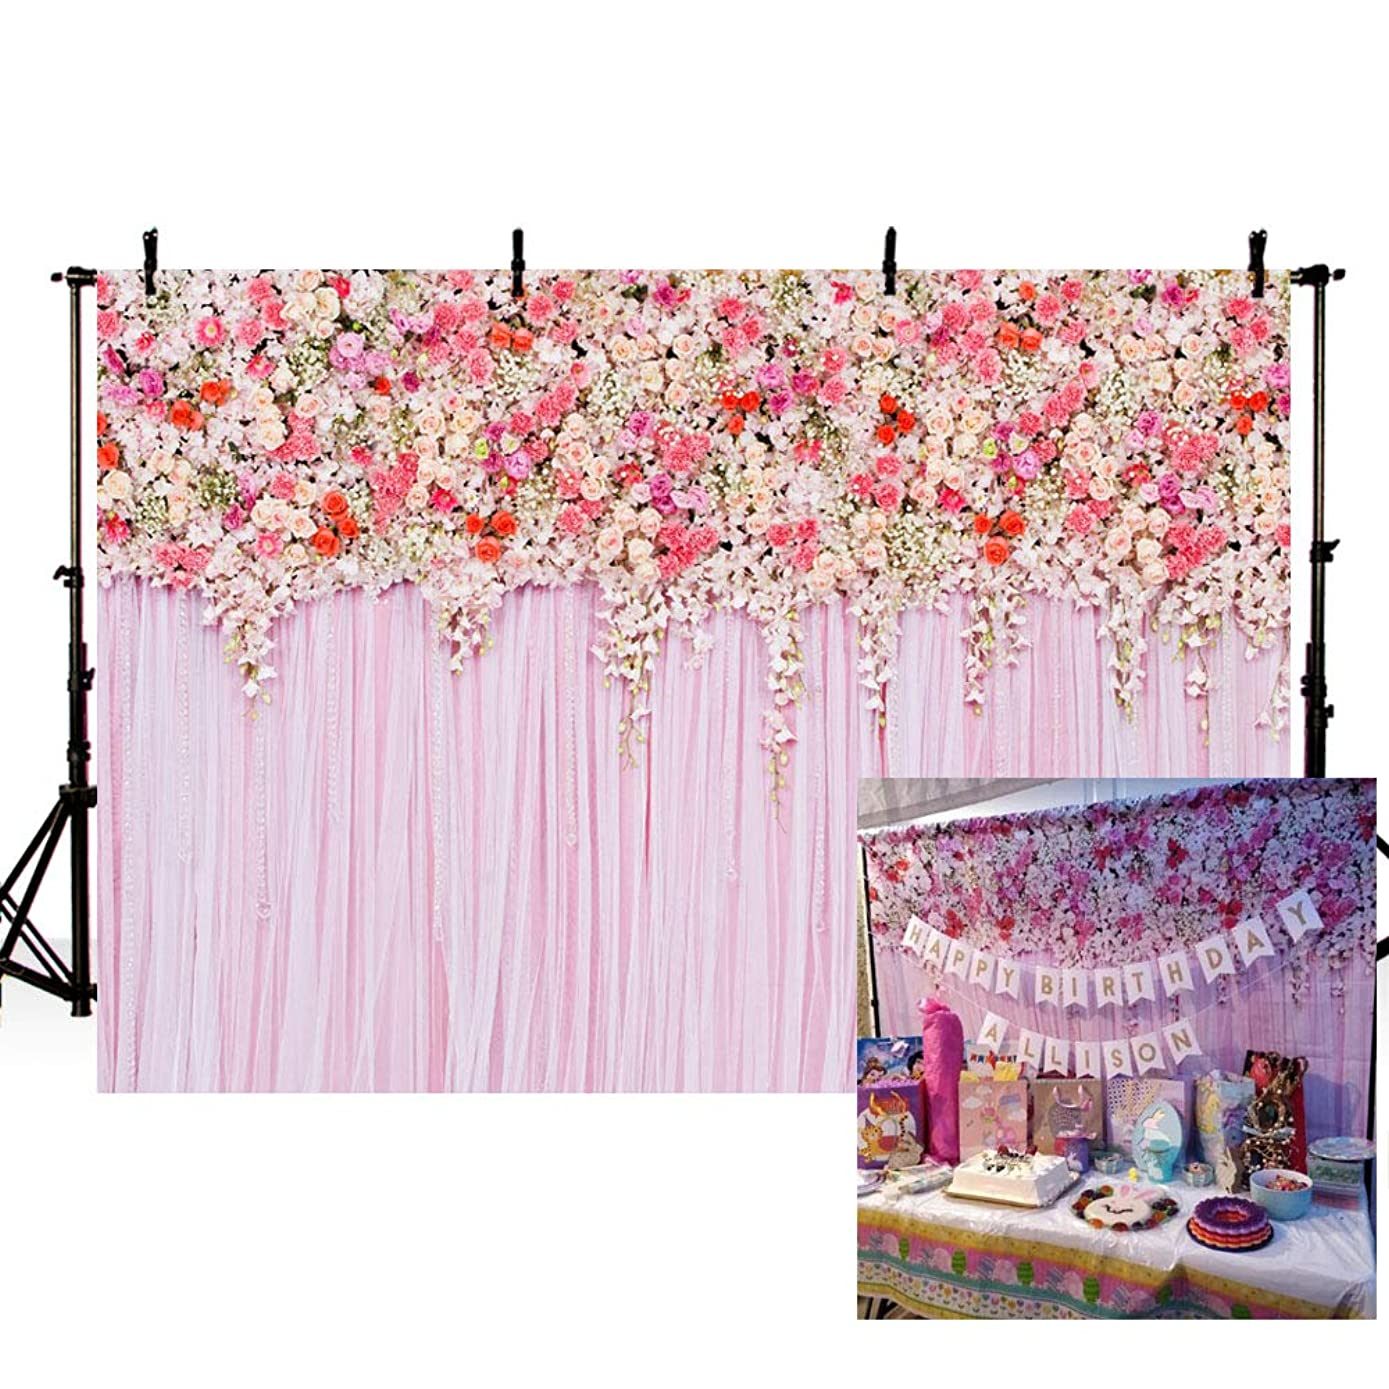 MEHOFOTO Pink Hanging Flower Printed Photo Studio Booth Backdrop Wedding Party Decoration Banner Floral Birthday Baby Shower Photography Background 7x5feet